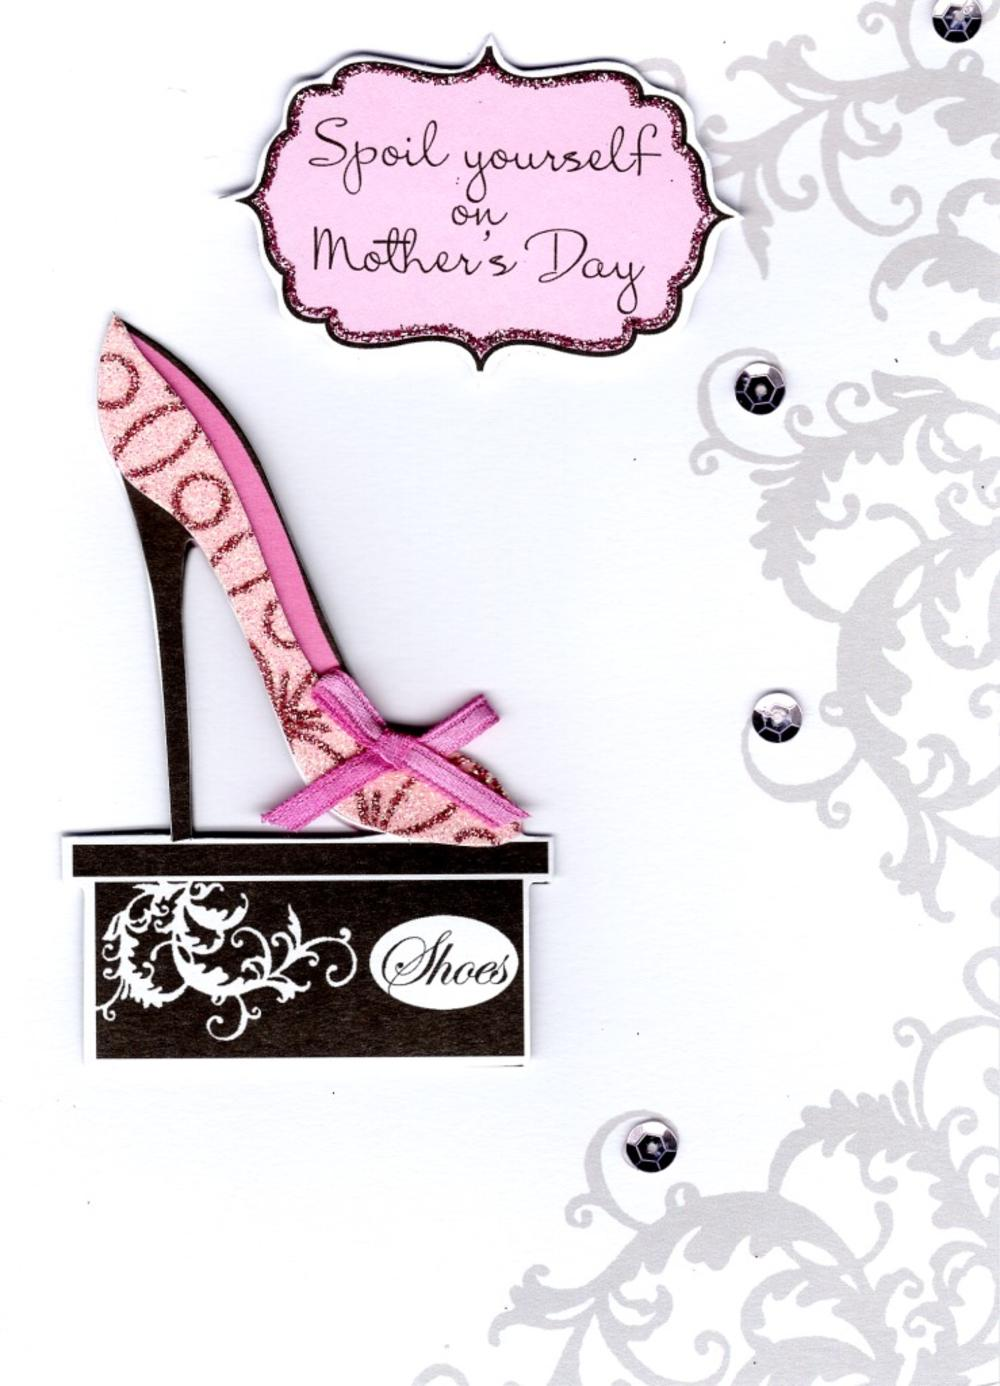 Spoil Yourself On Mother's Day Embellished Card